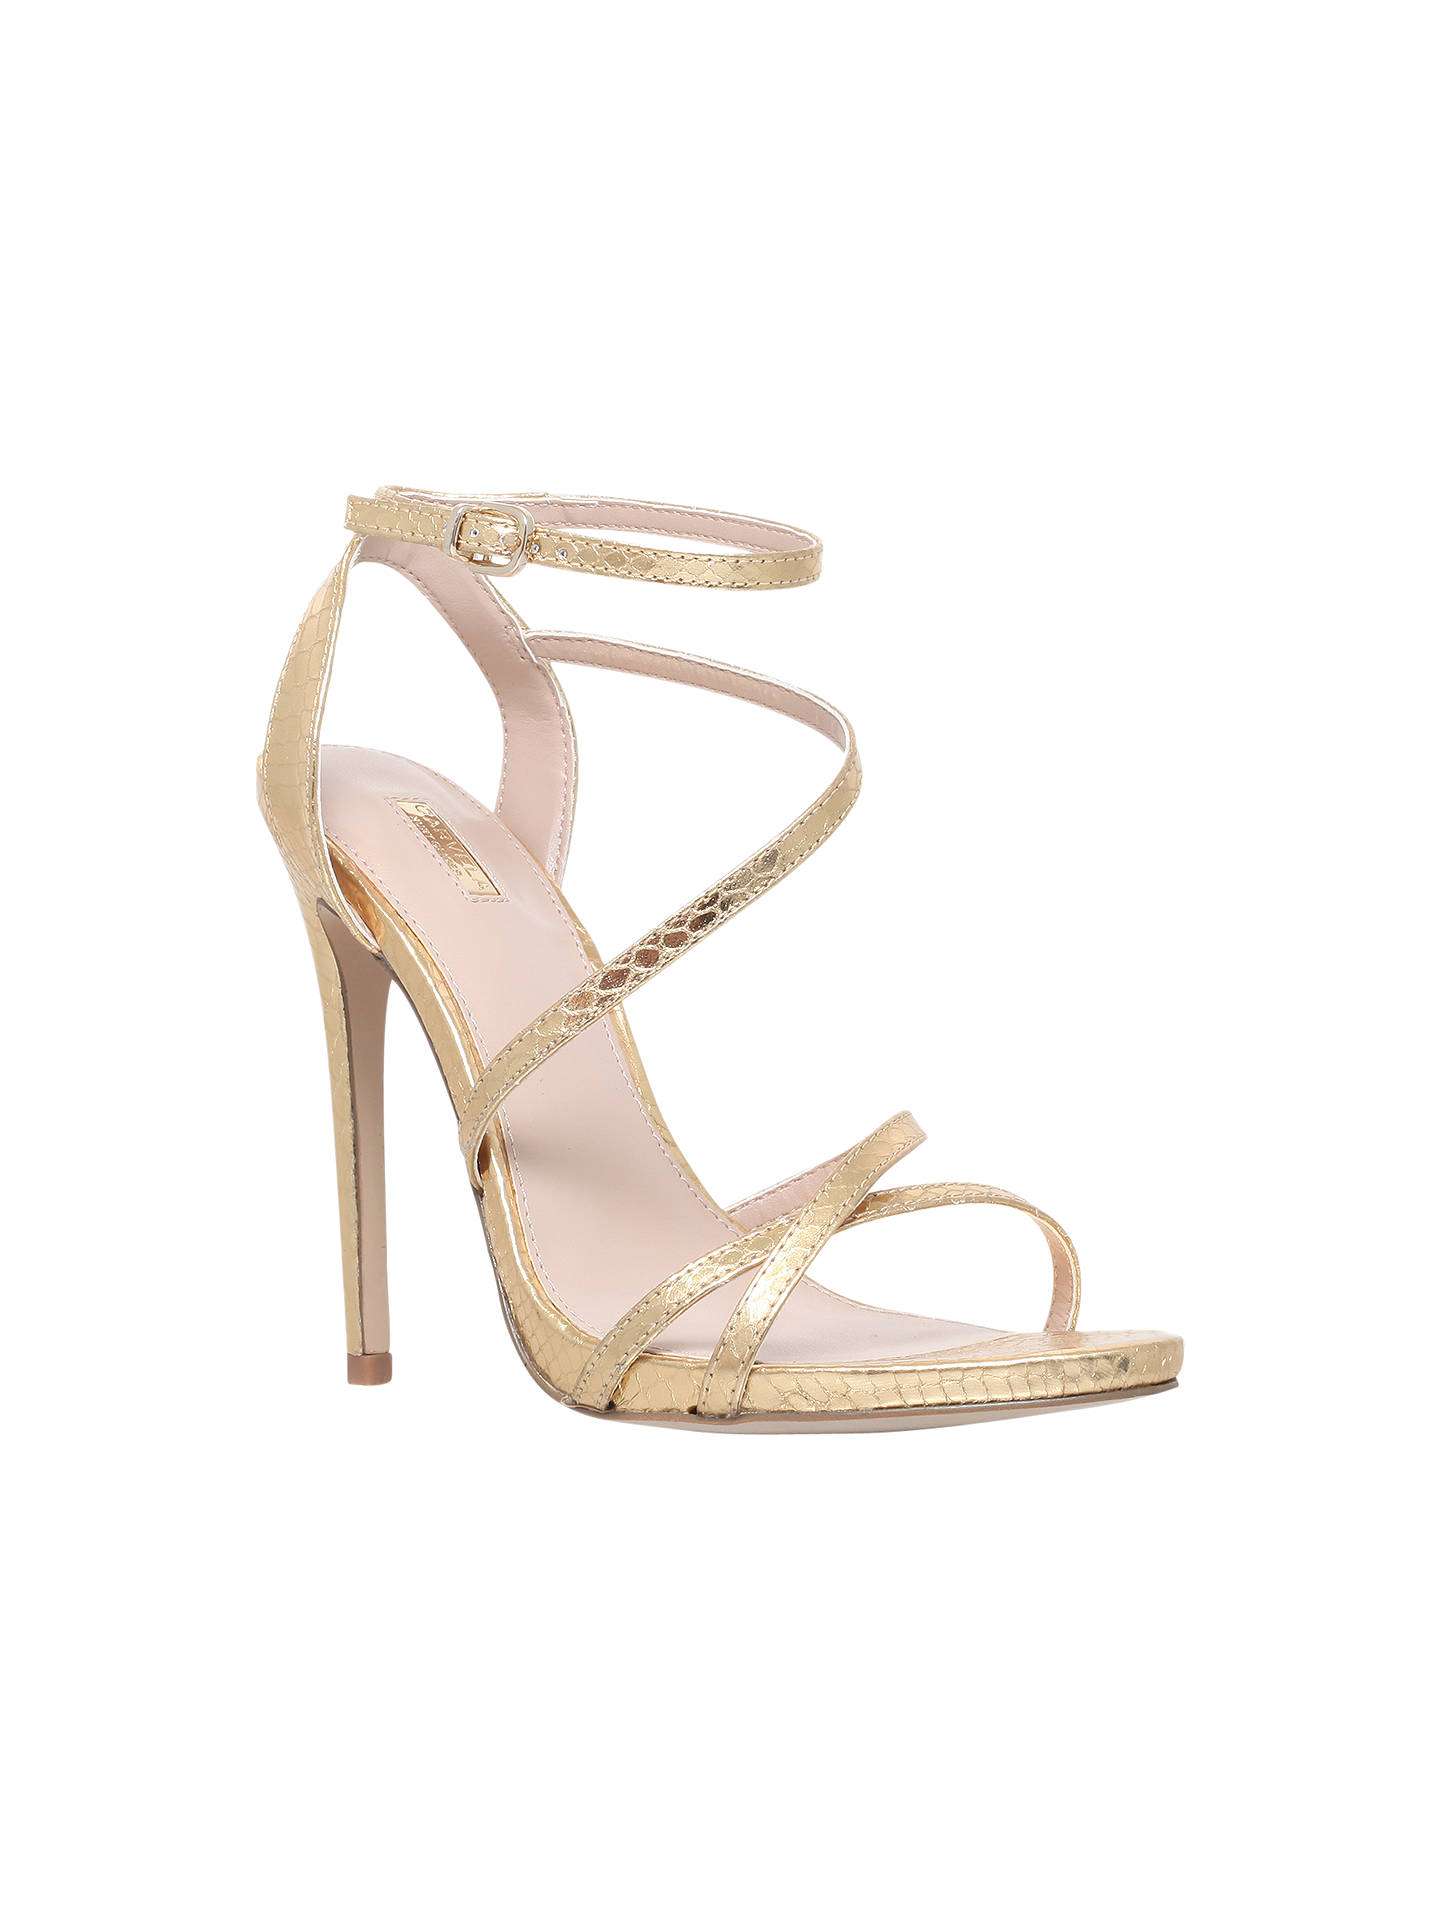 eed4a0f34a7 Buy Carvela Georgia Leather Stiletto Strappy Sandals